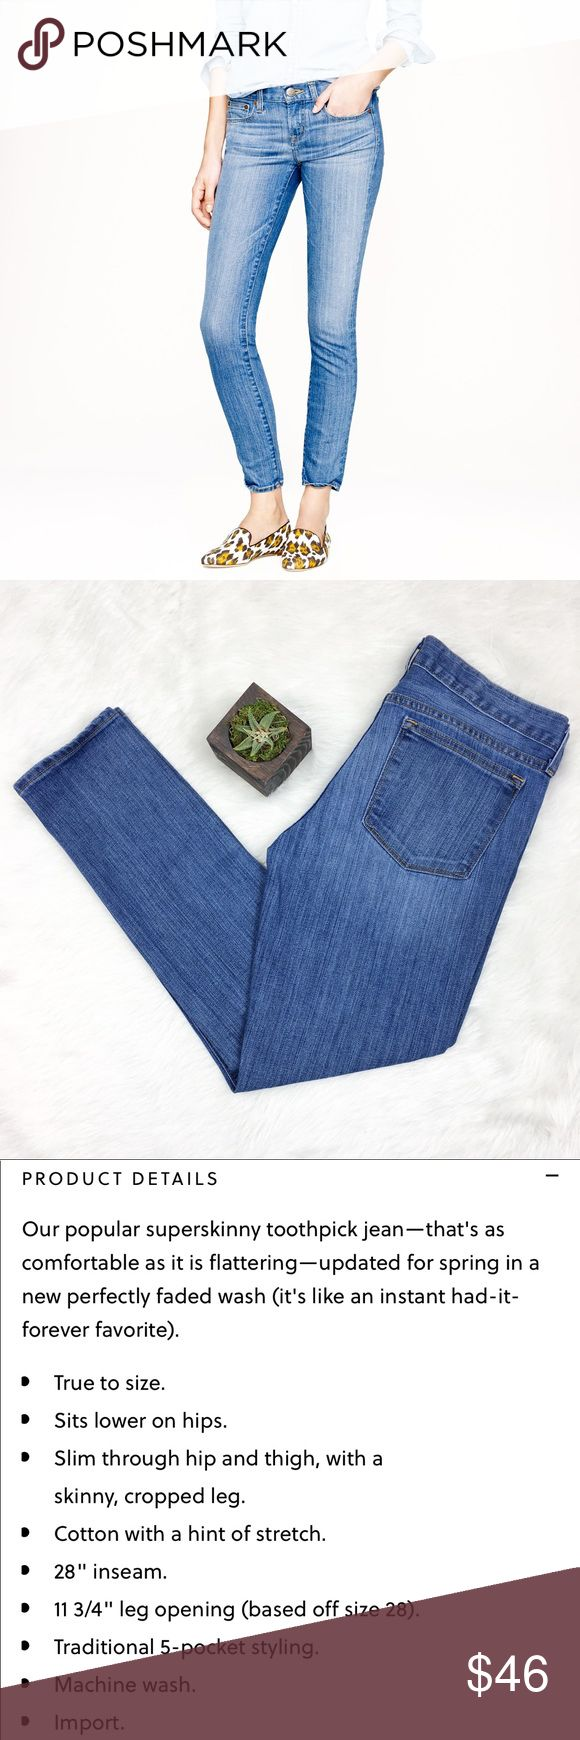 J.Crew Toothpick Jean in Northport Wash J.Crew toothpick jeans in northport wash. Size 28 with 27' inseam. These are ankle length jeans. EUC with no major flaws.  ❌No trades ❌ Modeling ❌No PayPal or off Posh transactions ❤️ I 💕Bundles ❤️Reasonable Offers PLEASE ❤️ J. Crew Jeans Ankle & Cropped